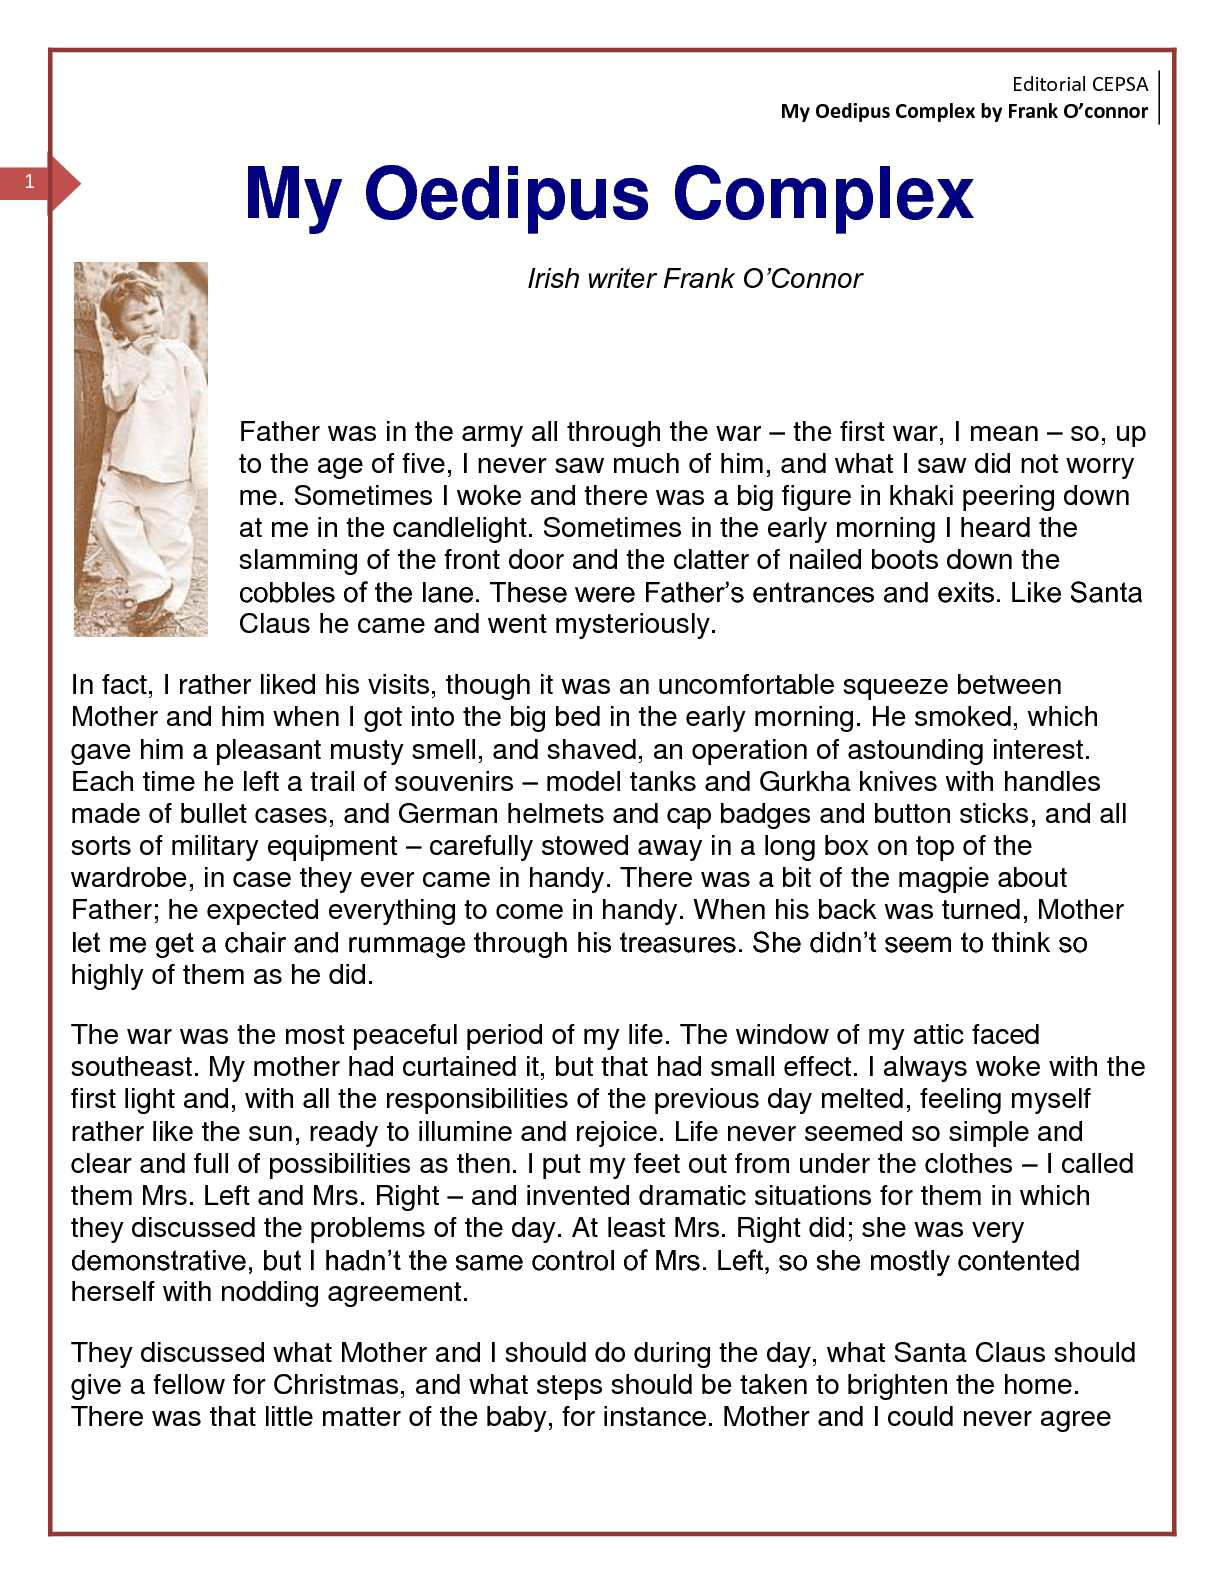 the oedipus complex essay